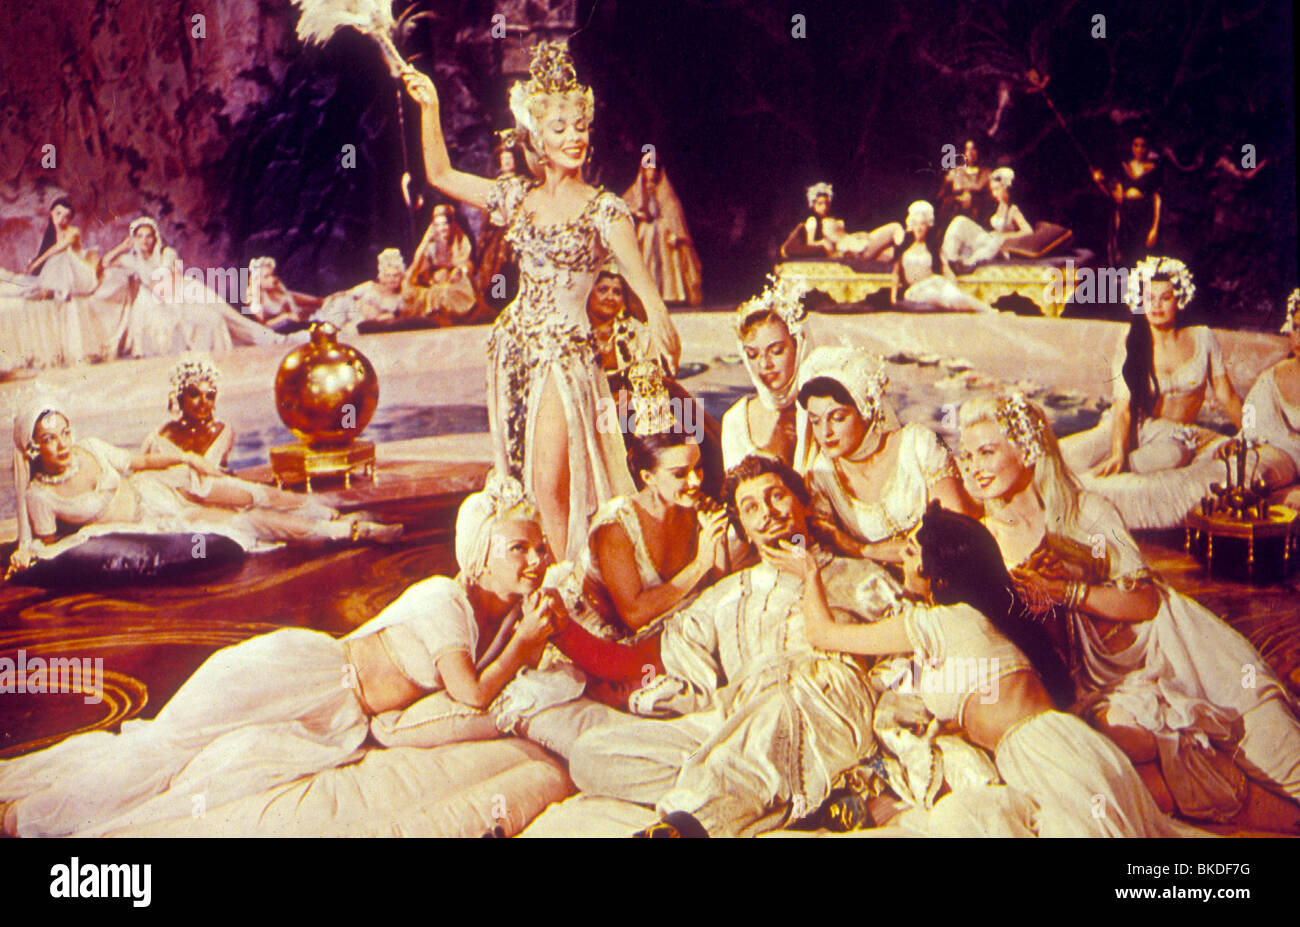 KISMET-1955 HOWARD KEEL Stockbild